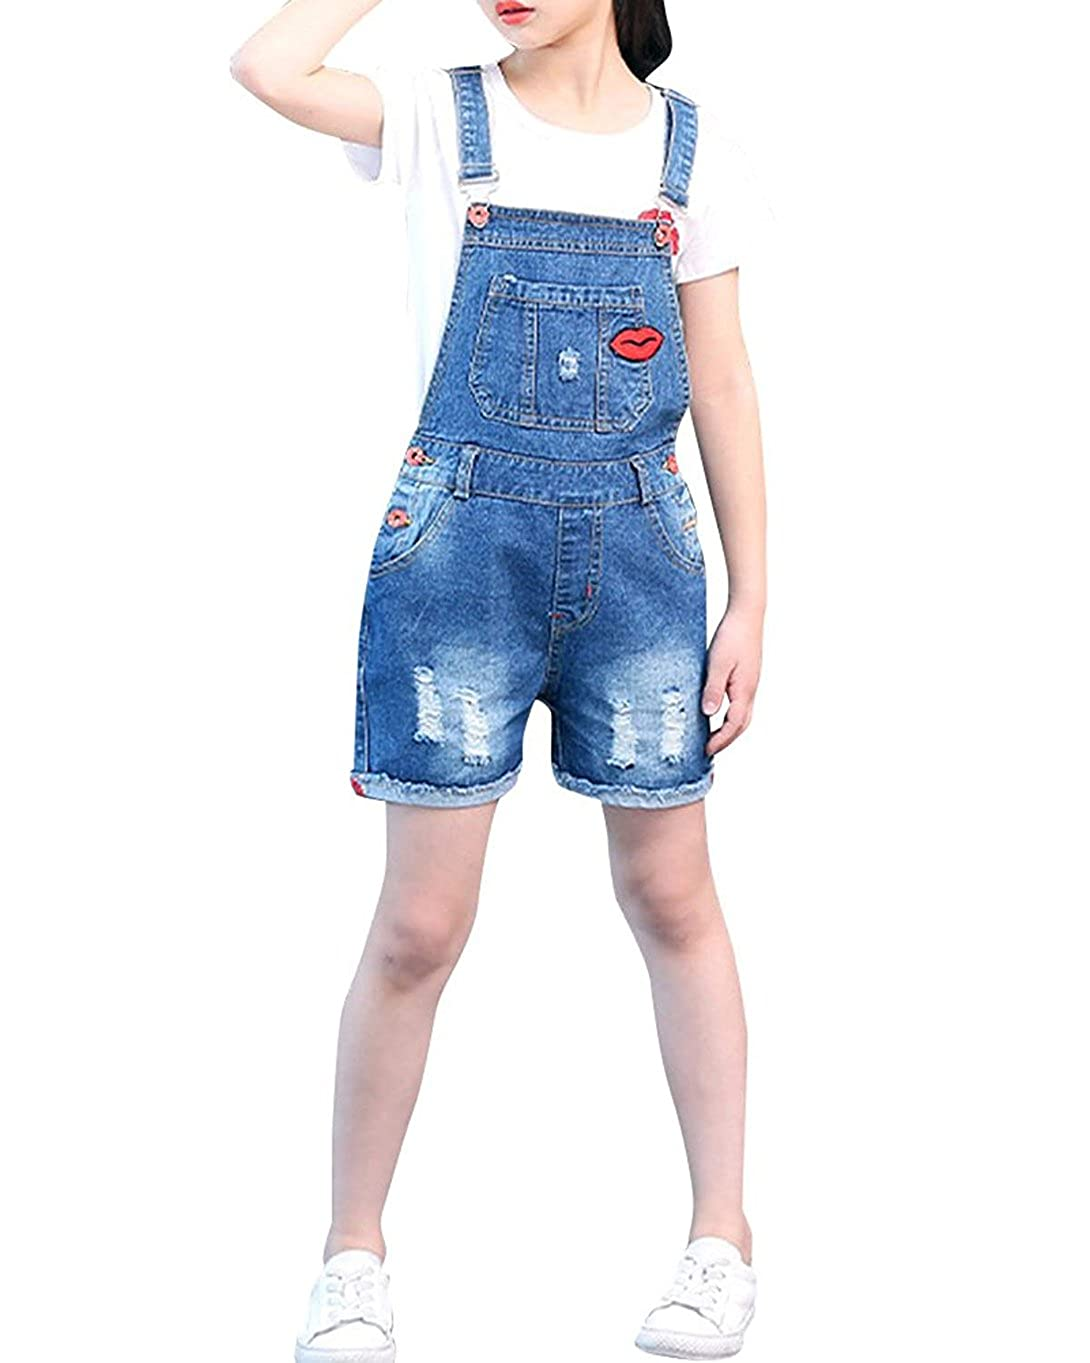 Kids Girls Denim Stretch Dungaree Shorts Summer Ripped Boyfriend Jeans Jumpsuit Playsuit for Age 7 8 9 10 11 12 13